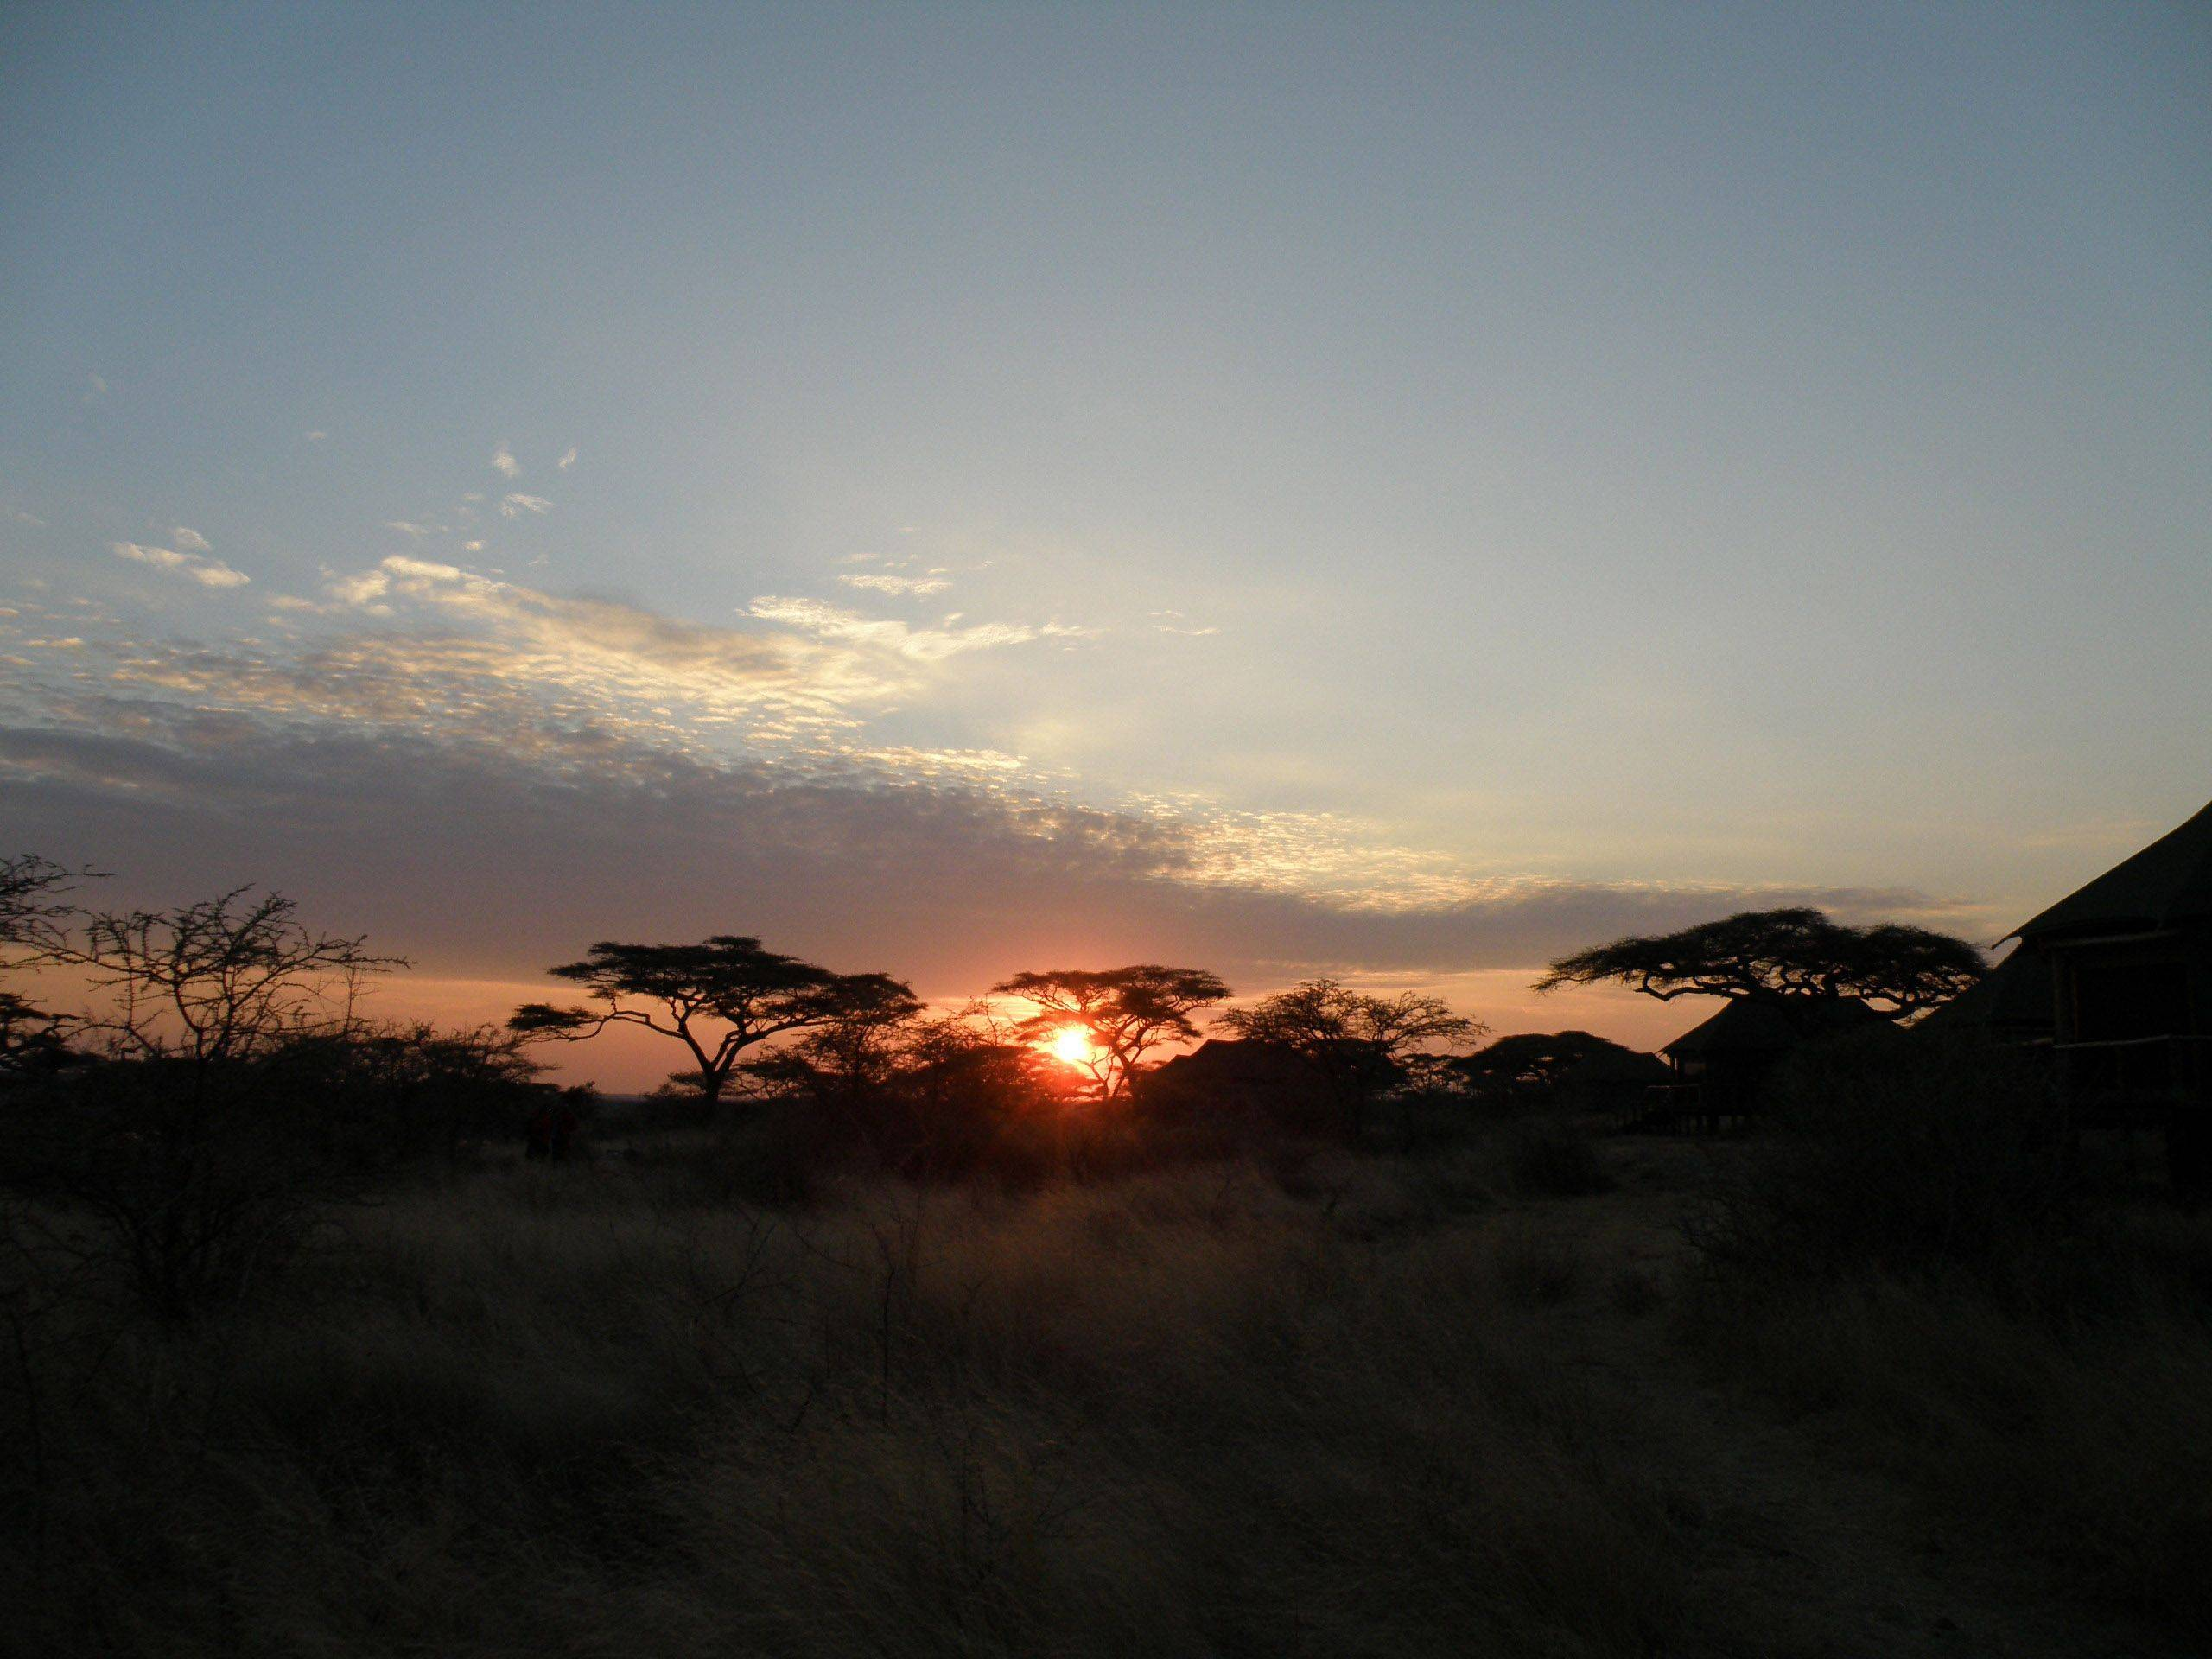 The sun rises over the umbrella Acacia trees on the Ngorongoro Highlands in Tanzania.